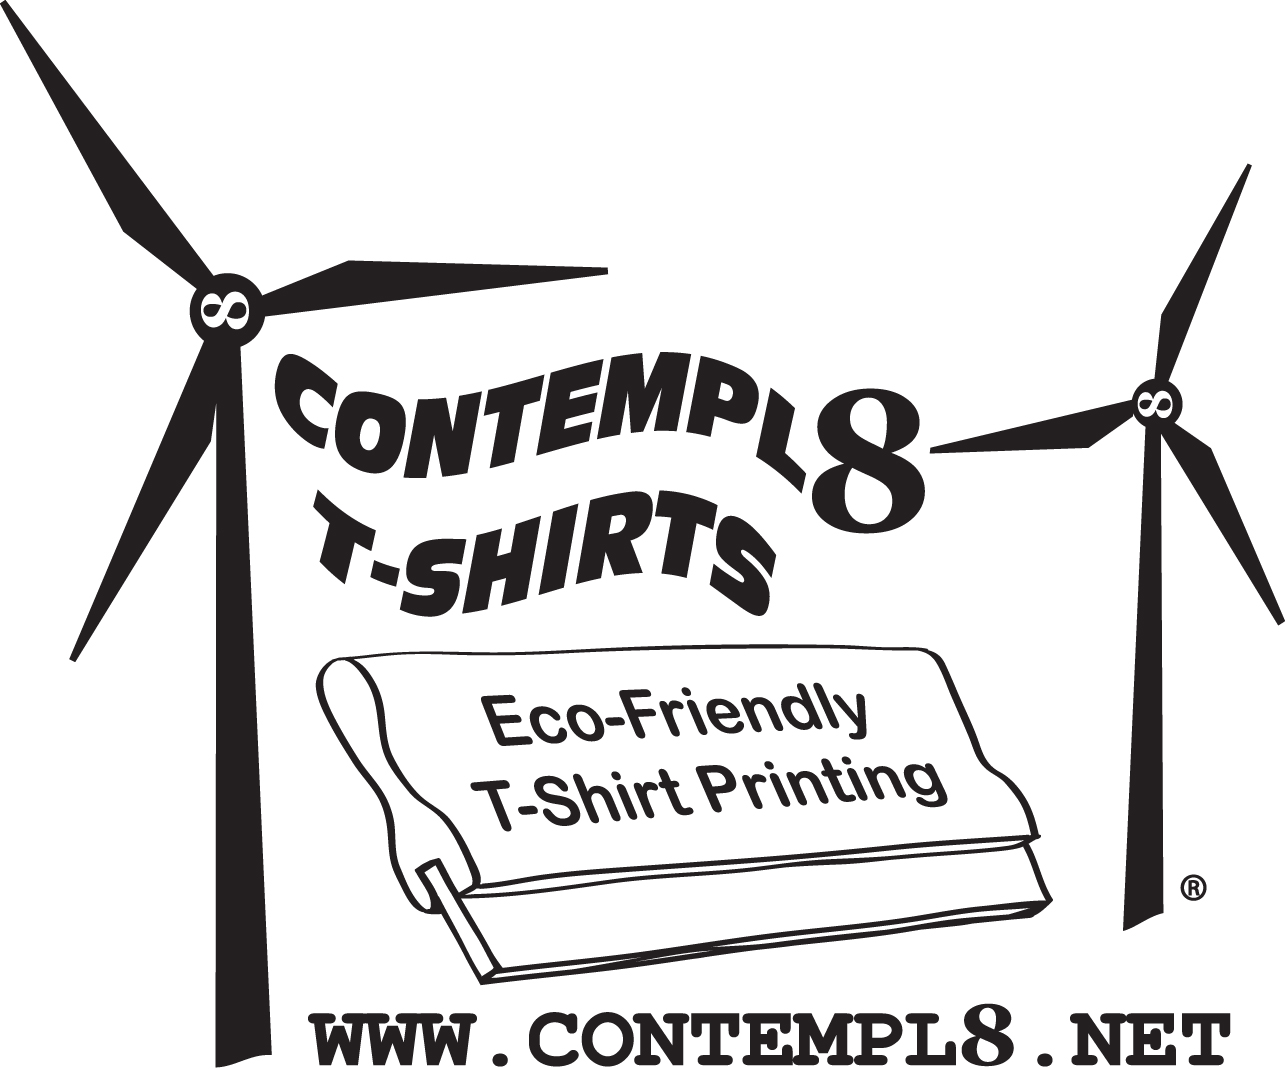 Contempl8 T-shirts